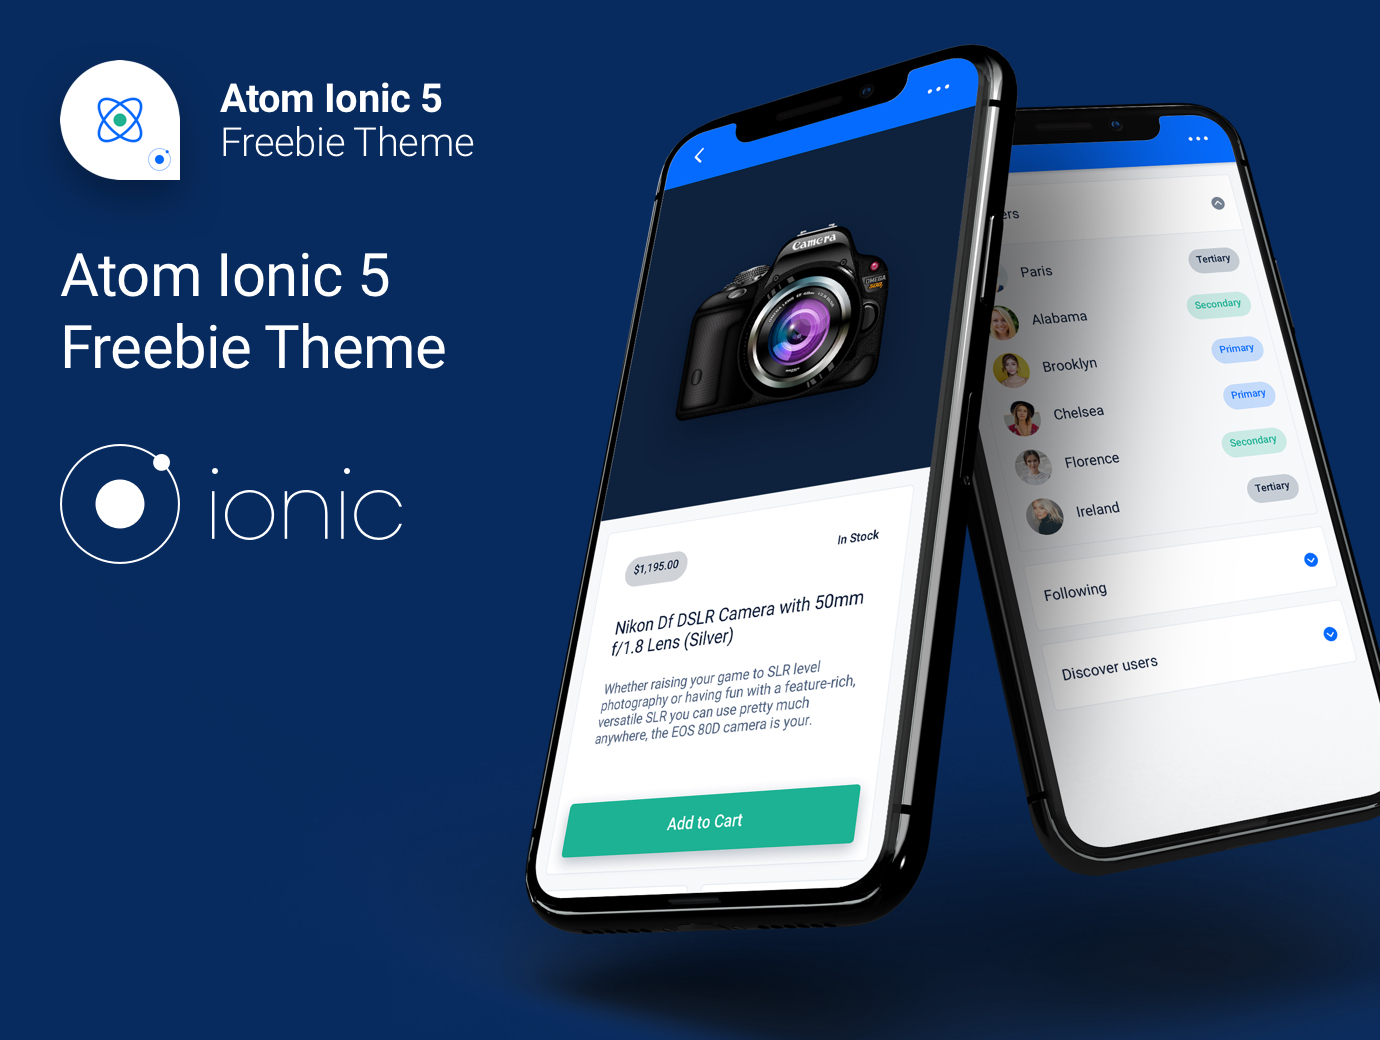 Atom Ionic 5 / Angular 10 Freebie Theme